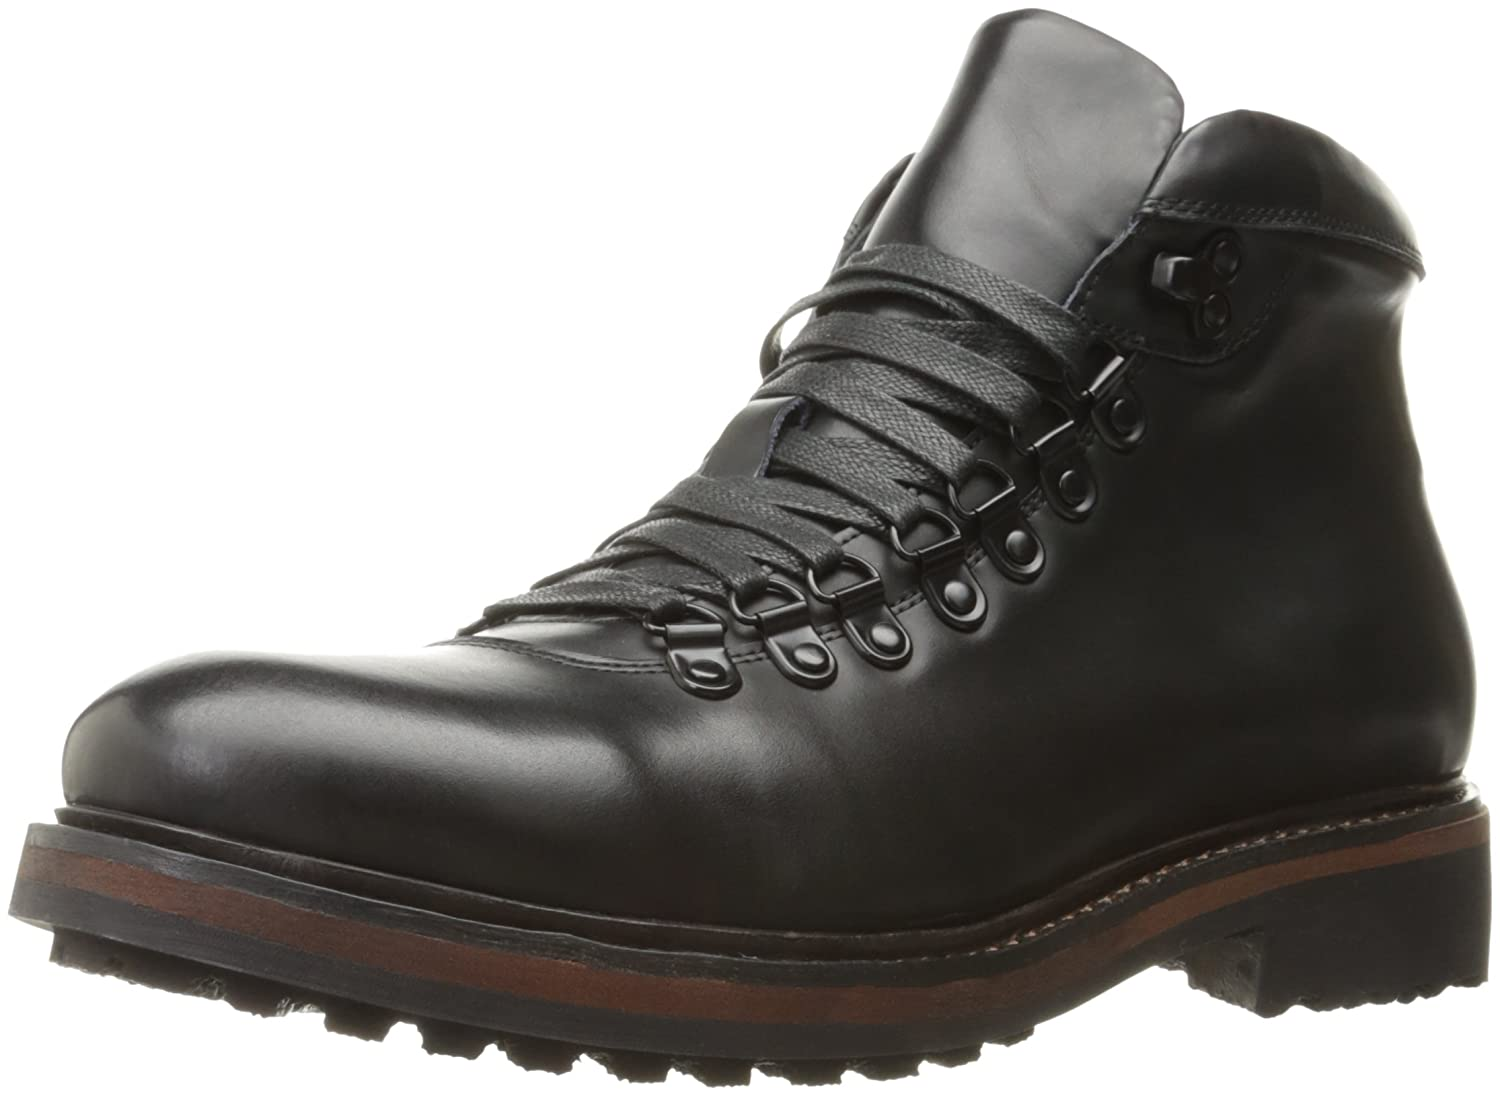 Kenneth Cole REACTION Men's Climb the Rope Winter Boot